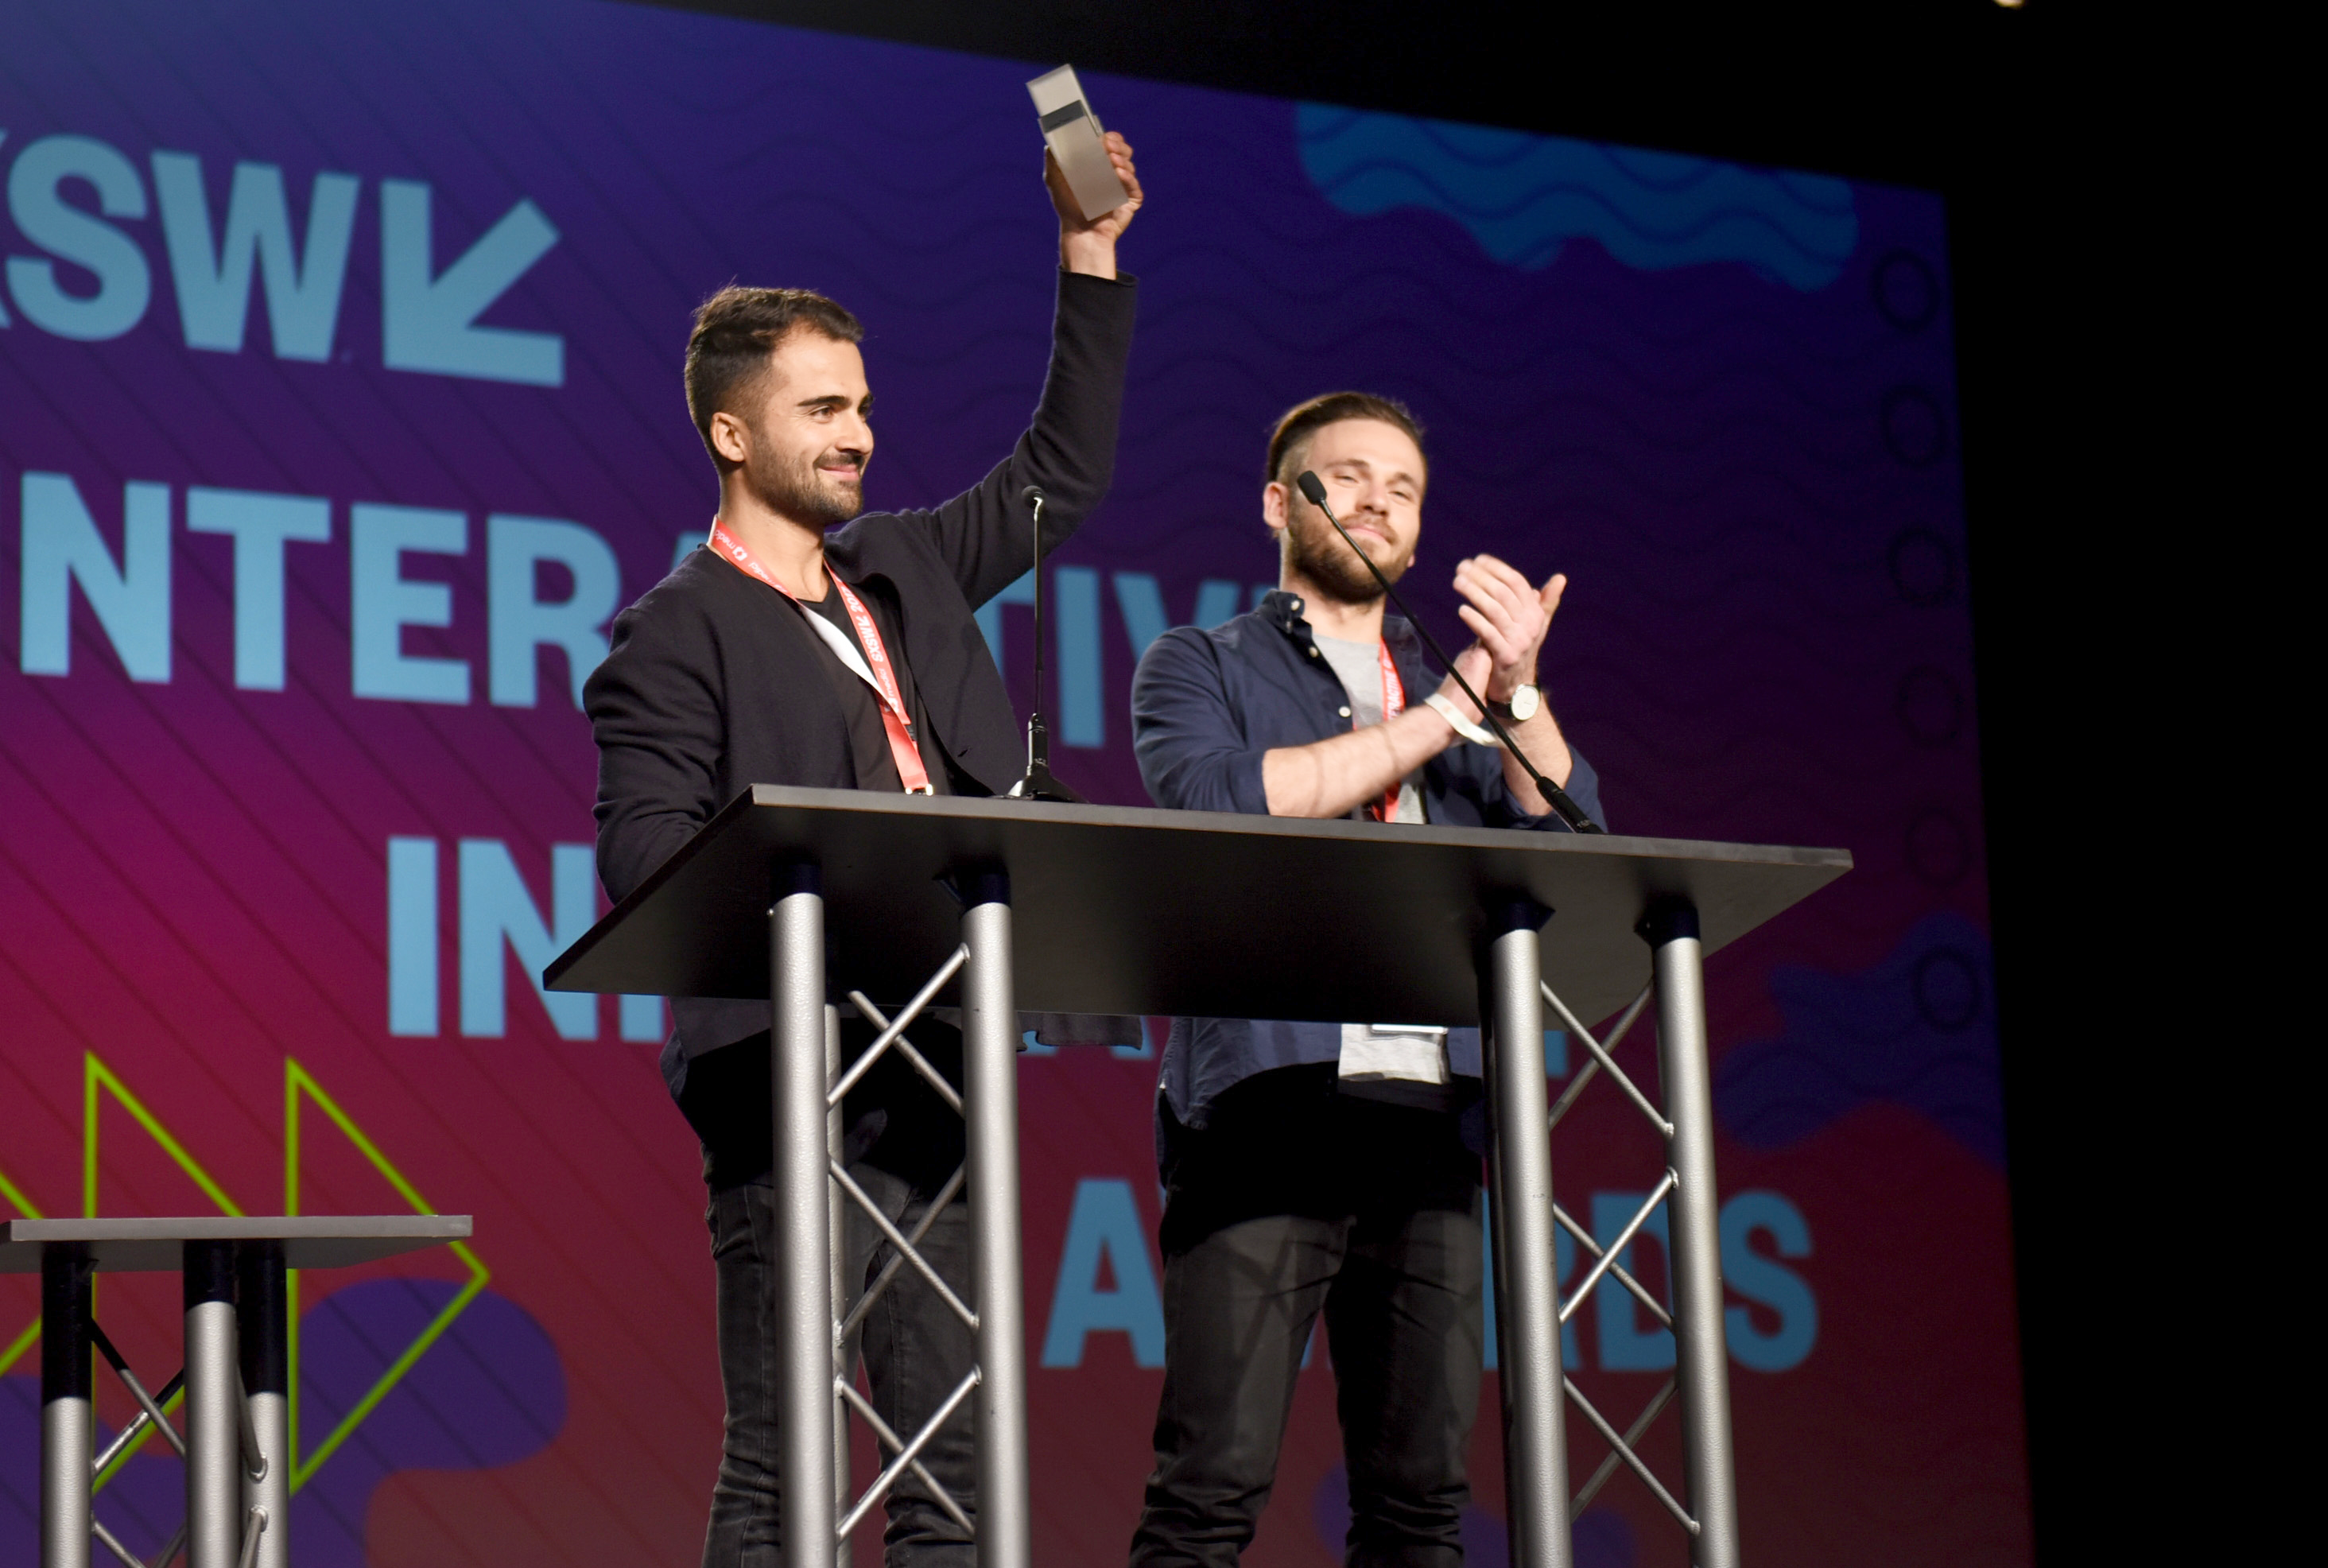 Announcing the 2017 Winners of the SXSW Interactive Innovation Awards